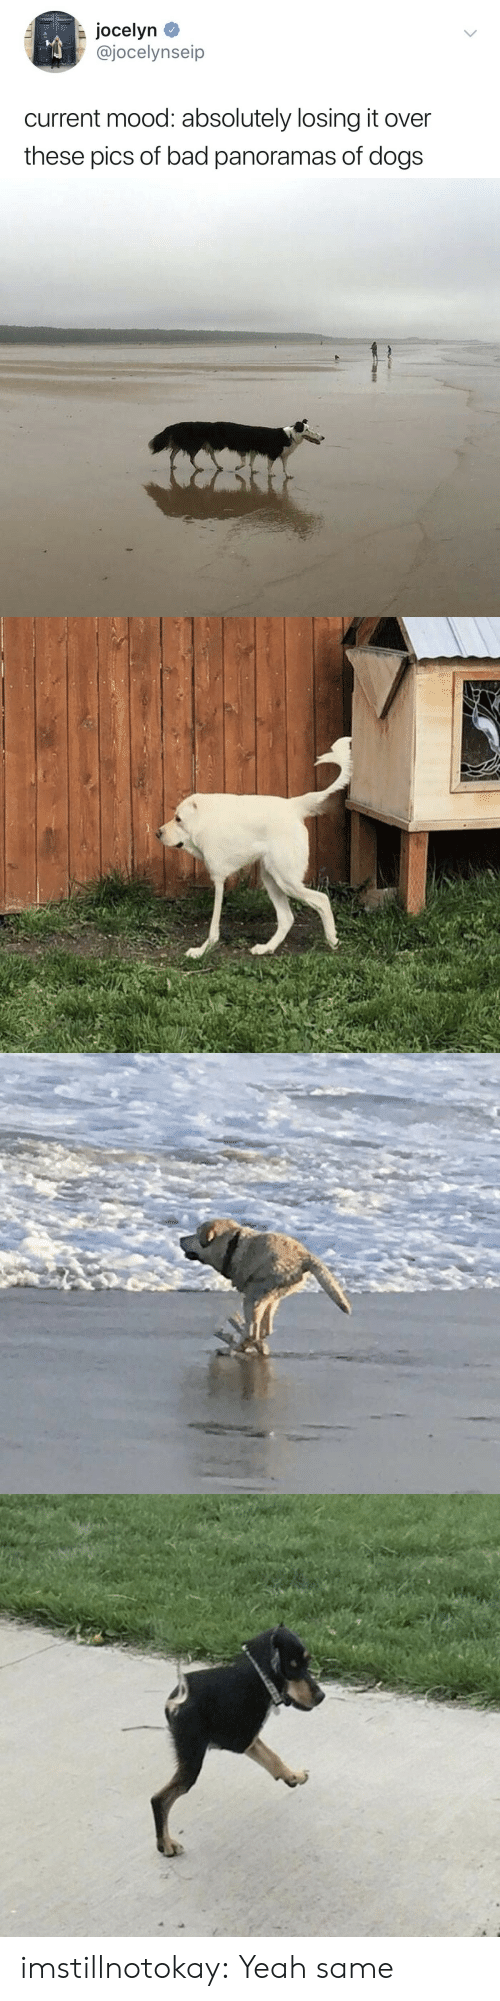 Bad, Dogs, and Mood: Jocelyn  @jocelynseip  current mood: absolutely losing it over  these pics of bad panoramas of dogs imstillnotokay:  Yeah same